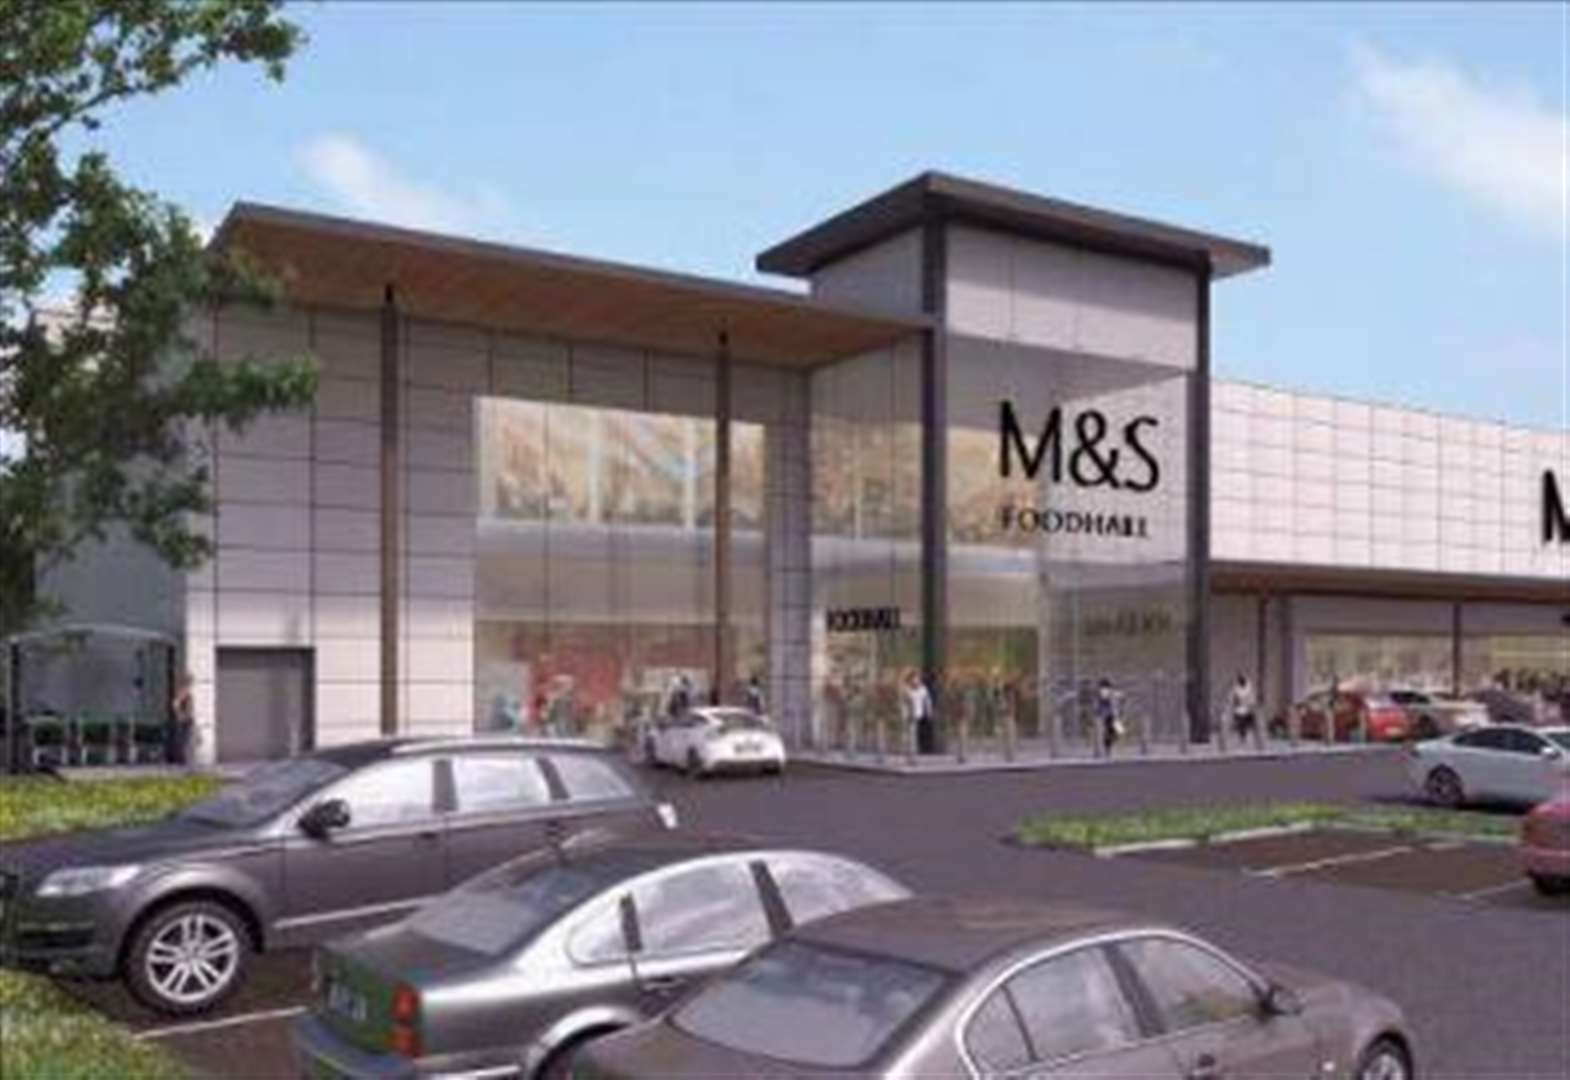 M&S superstore looks set to get green light